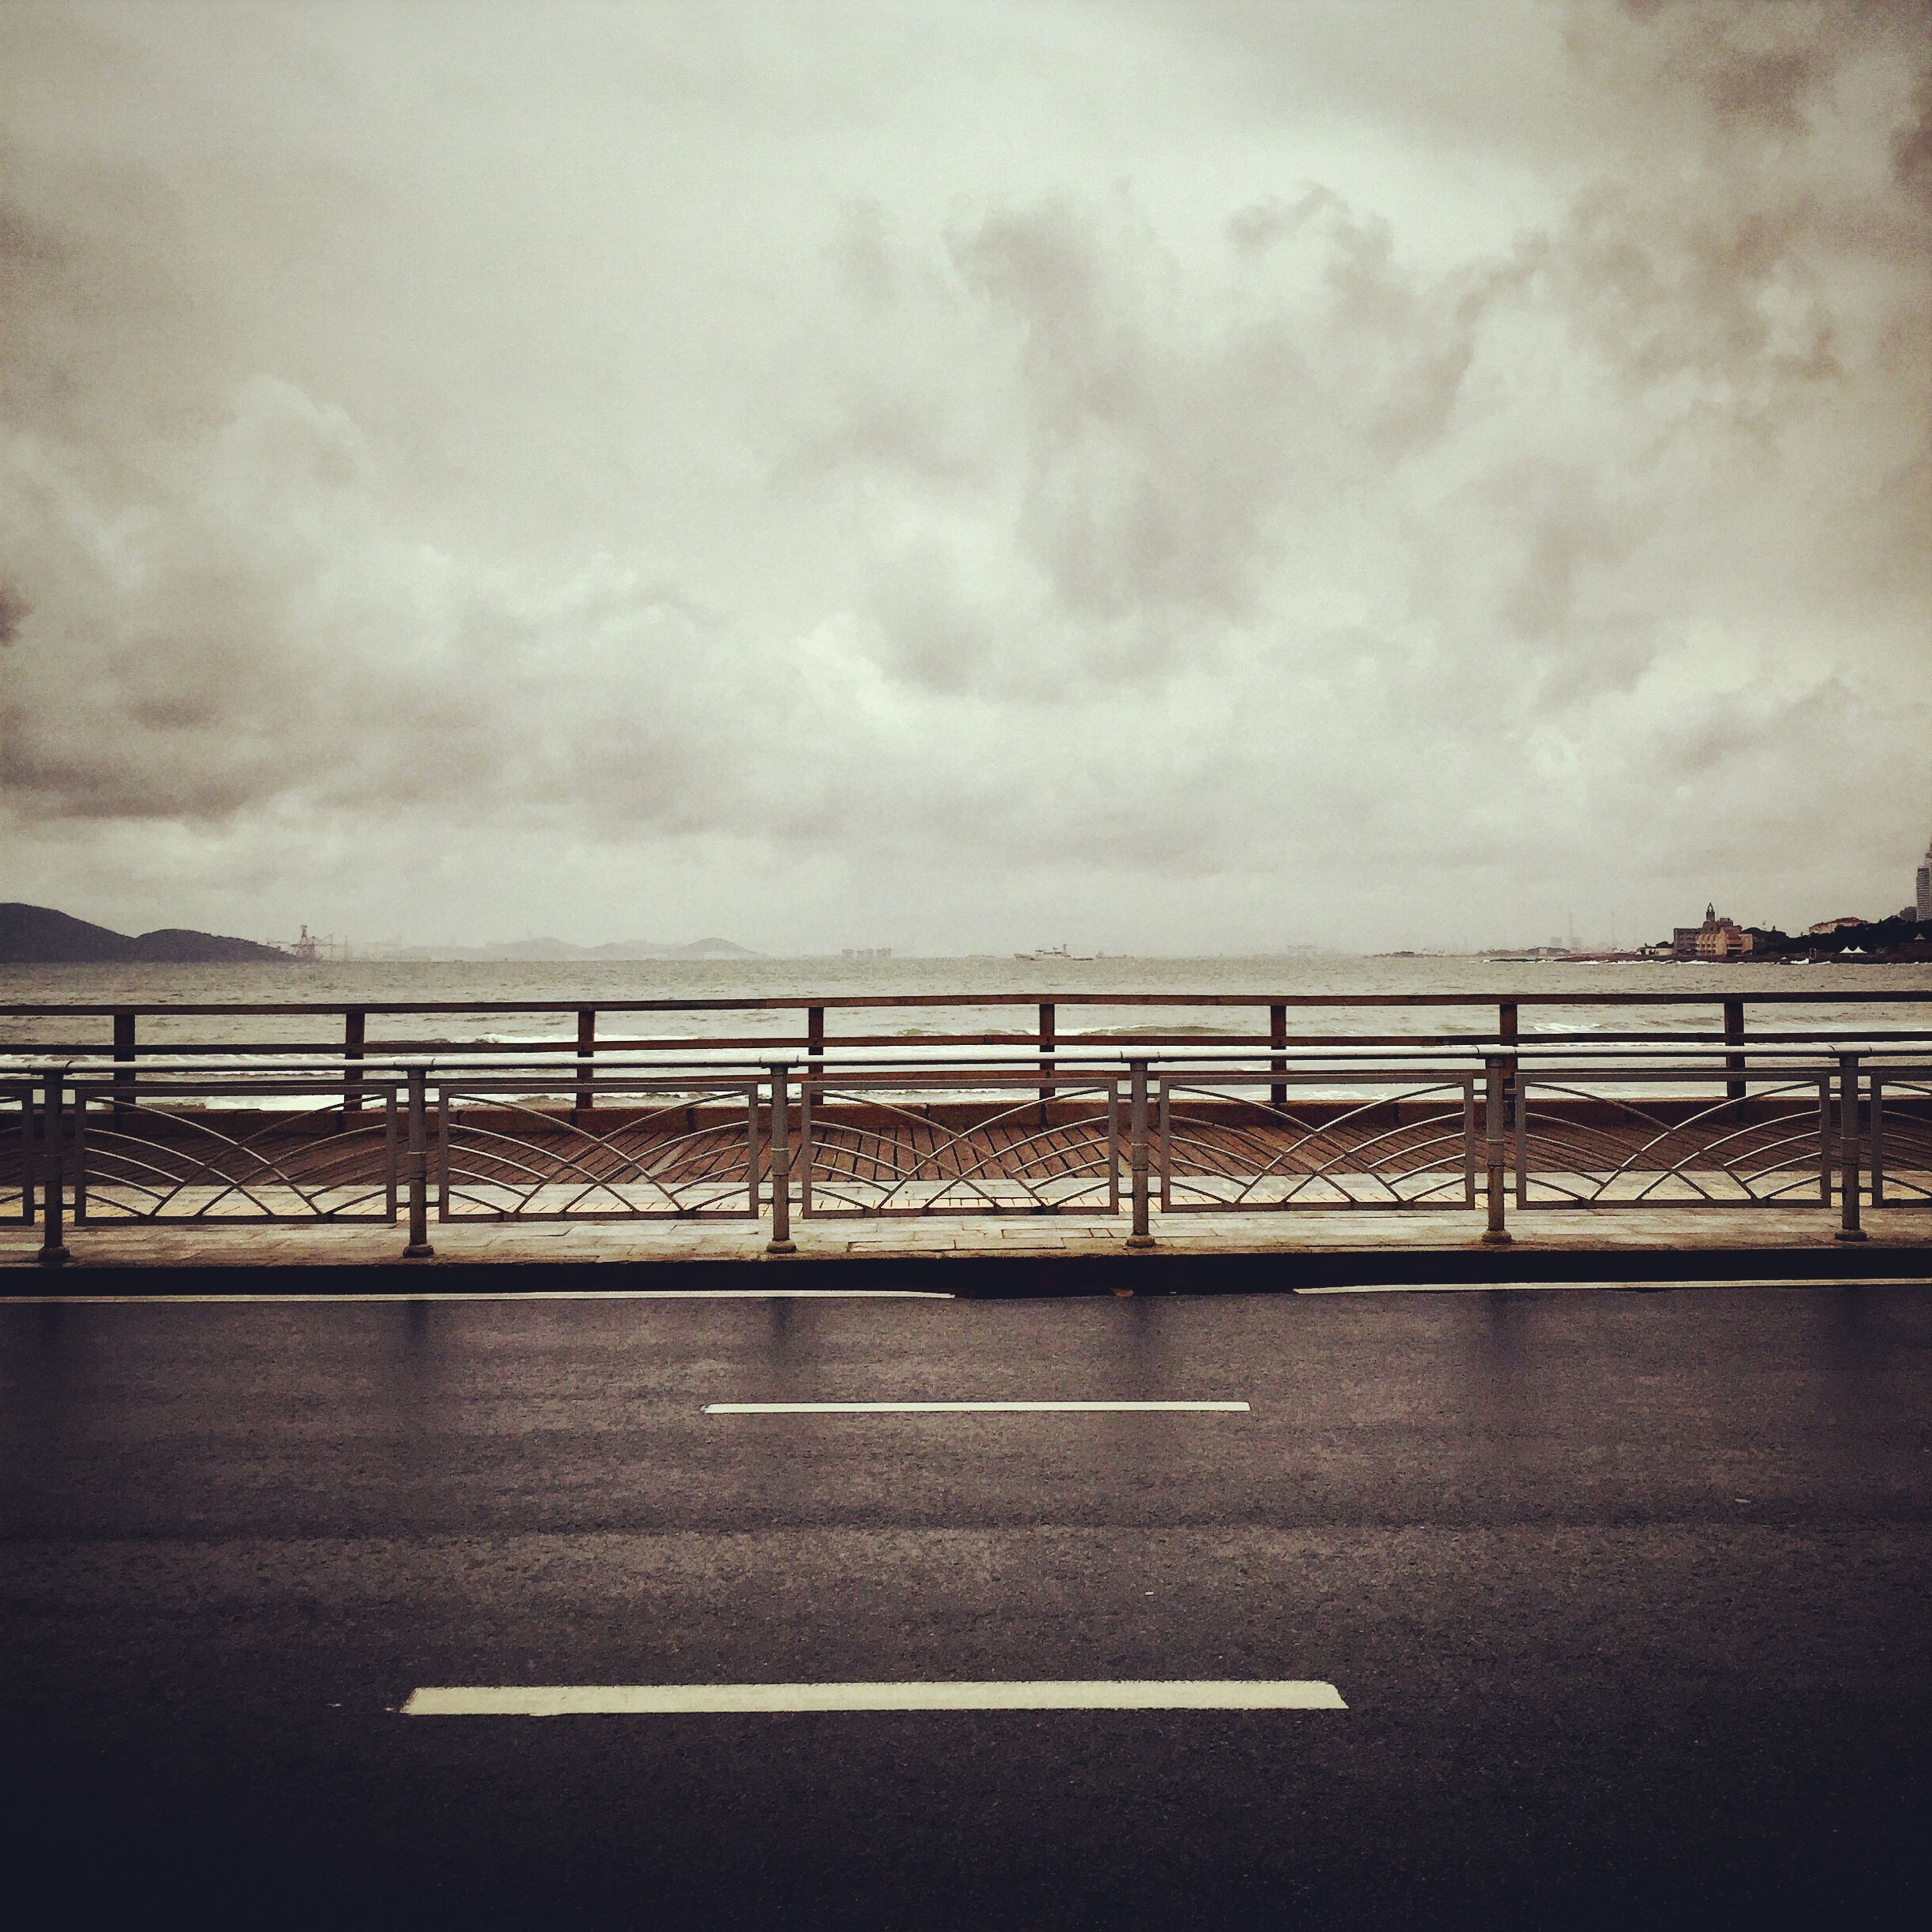 sky, bridge - man made structure, cloud - sky, connection, transportation, built structure, cloudy, railing, architecture, bridge, cloud, water, river, road, engineering, outdoors, overcast, no people, road marking, nature